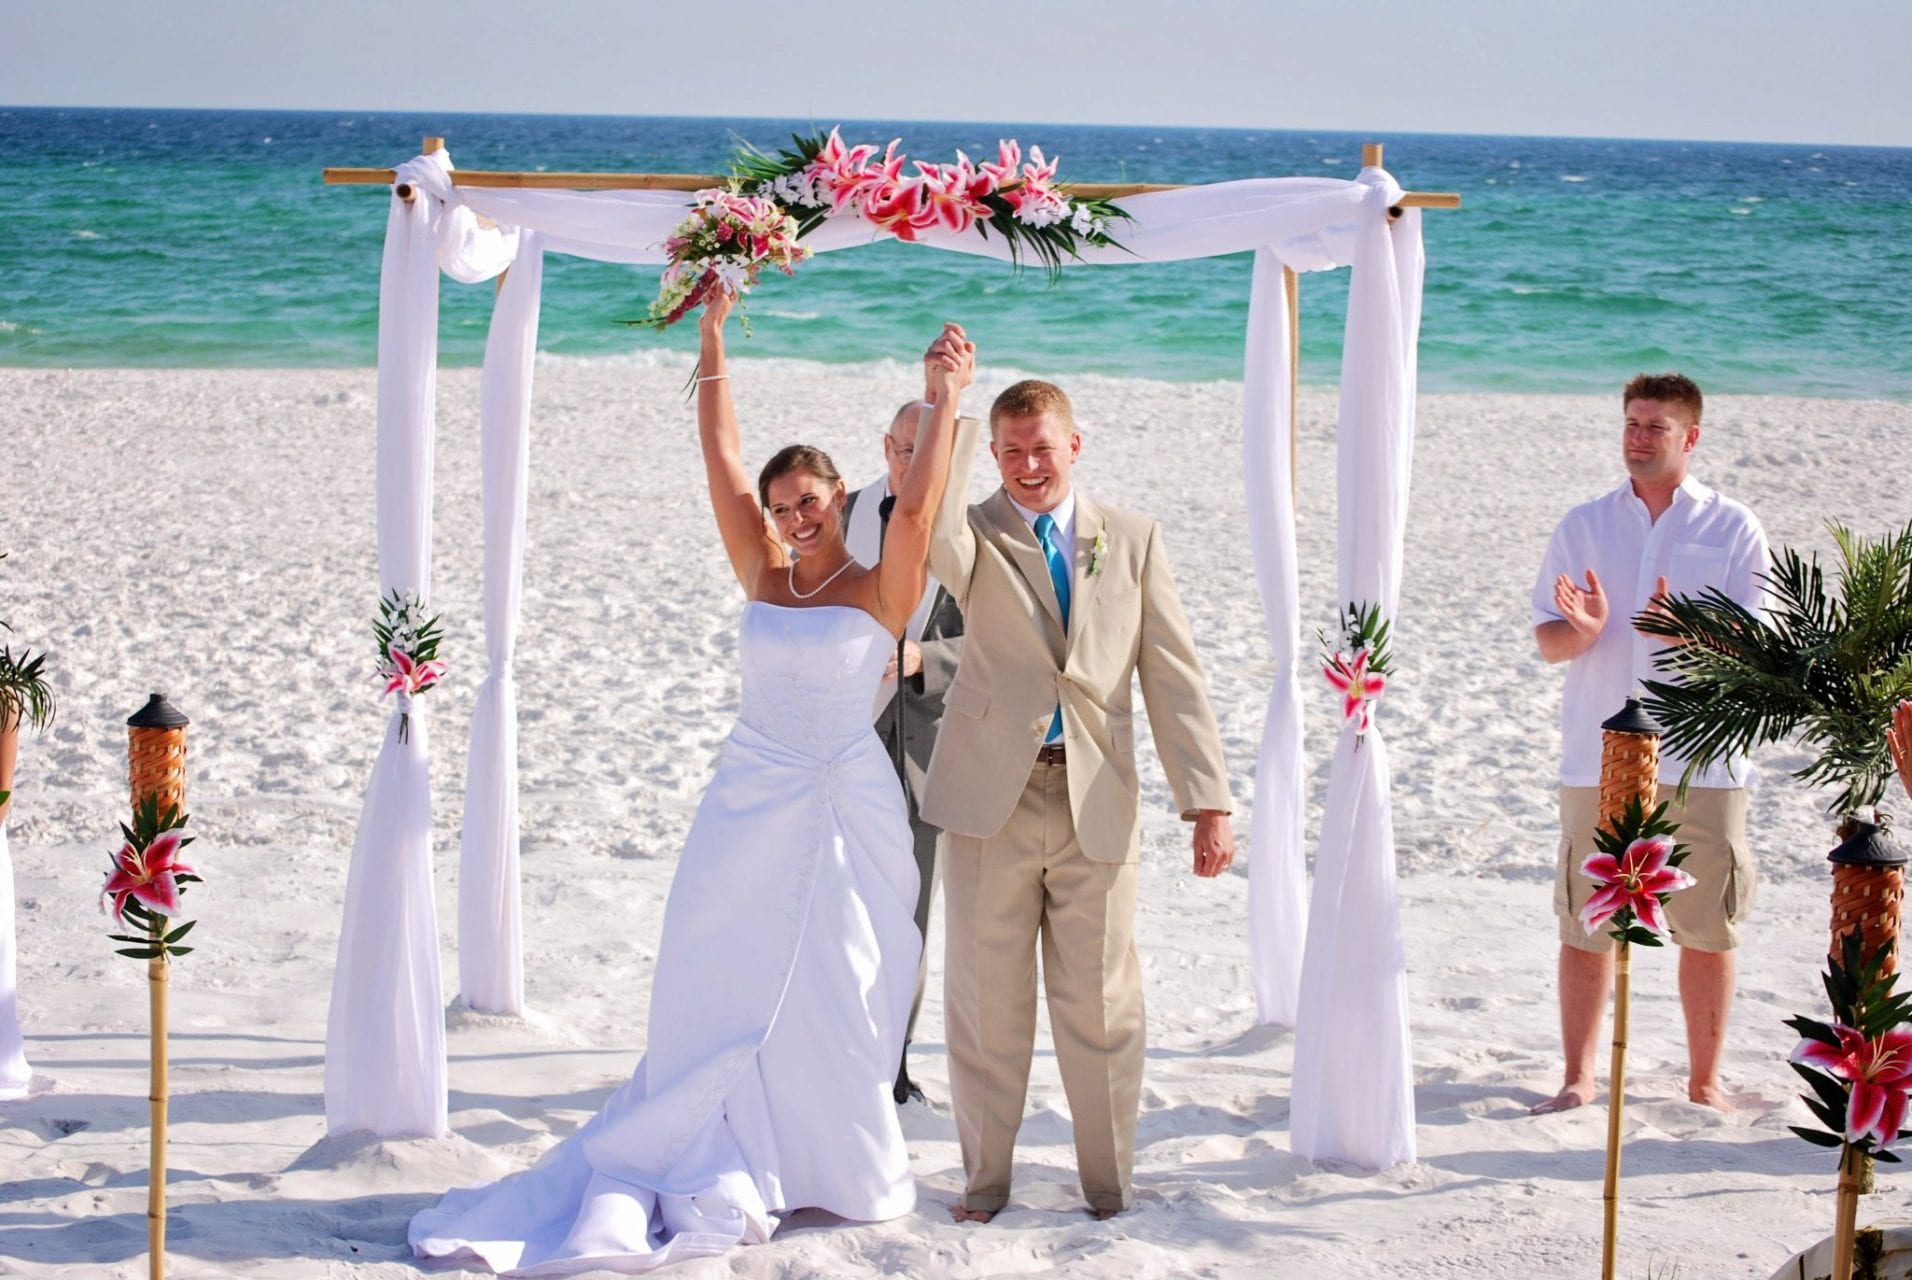 Couple puts hands up after Gulf beach wedding in Destin, FL